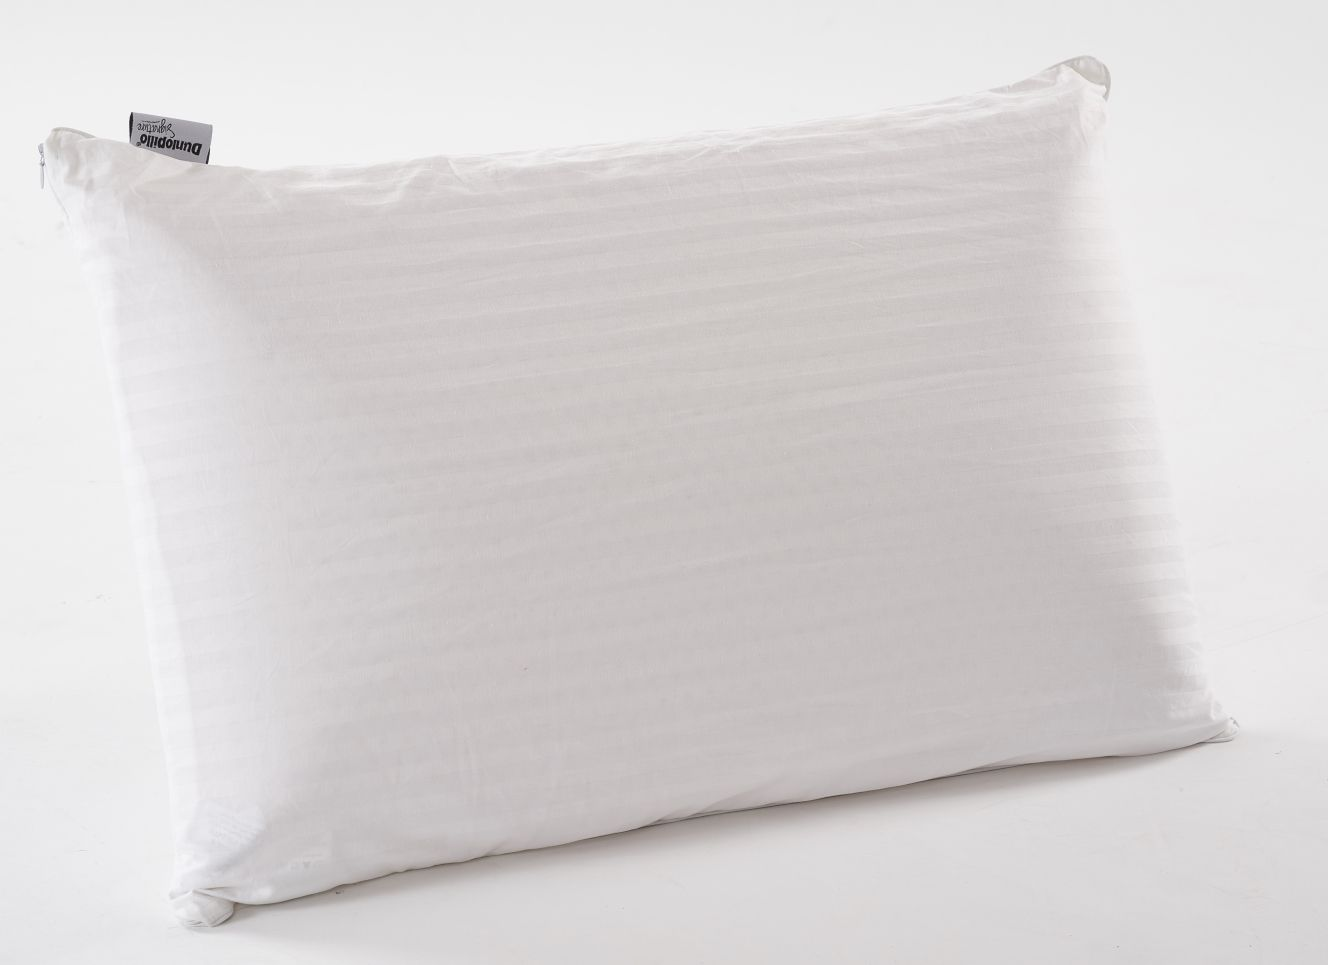 Dunlopillo Latex Serenity Pillow